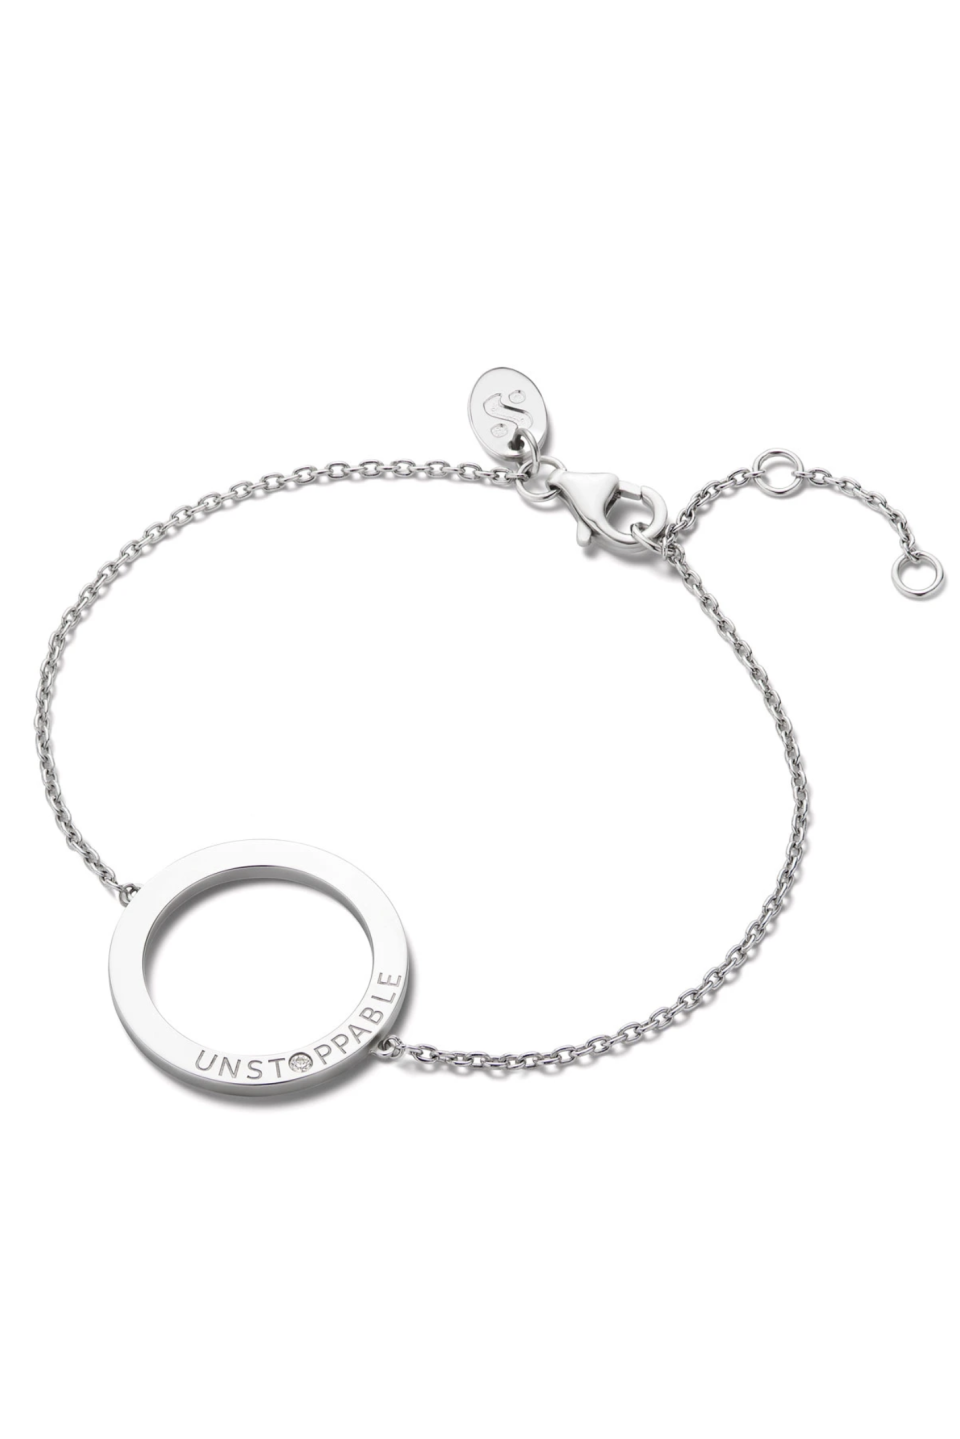 """<p><strong>Serena Williams</strong></p><p>serenawilliamsjewelry.com</p><p><strong>$100.00</strong></p><p><a href=""""https://go.redirectingat.com?id=74968X1596630&url=https%3A%2F%2Fserenawilliamsjewelry.com%2Fcollections%2Fshop-all%2Fproducts%2Funstoppable-toggle-bracelet&sref=https%3A%2F%2Fwww.marieclaire.com%2Ffashion%2Fg33849312%2Fgifts-that-give-back%2F"""" rel=""""nofollow noopener"""" target=""""_blank"""" data-ylk=""""slk:SHOP IT"""" class=""""link rapid-noclick-resp"""">SHOP IT</a></p><p>Give this to the kickass person in your life to help remind them what you already know: they're unstoppable forces when they put their minds to it. (And yes, that is a diamond in the middle!) All net proceeds from this bracelet will go to Opportunity Fund's Small Business Relief Fund, which provides support directly to Black small-business owners. </p>"""